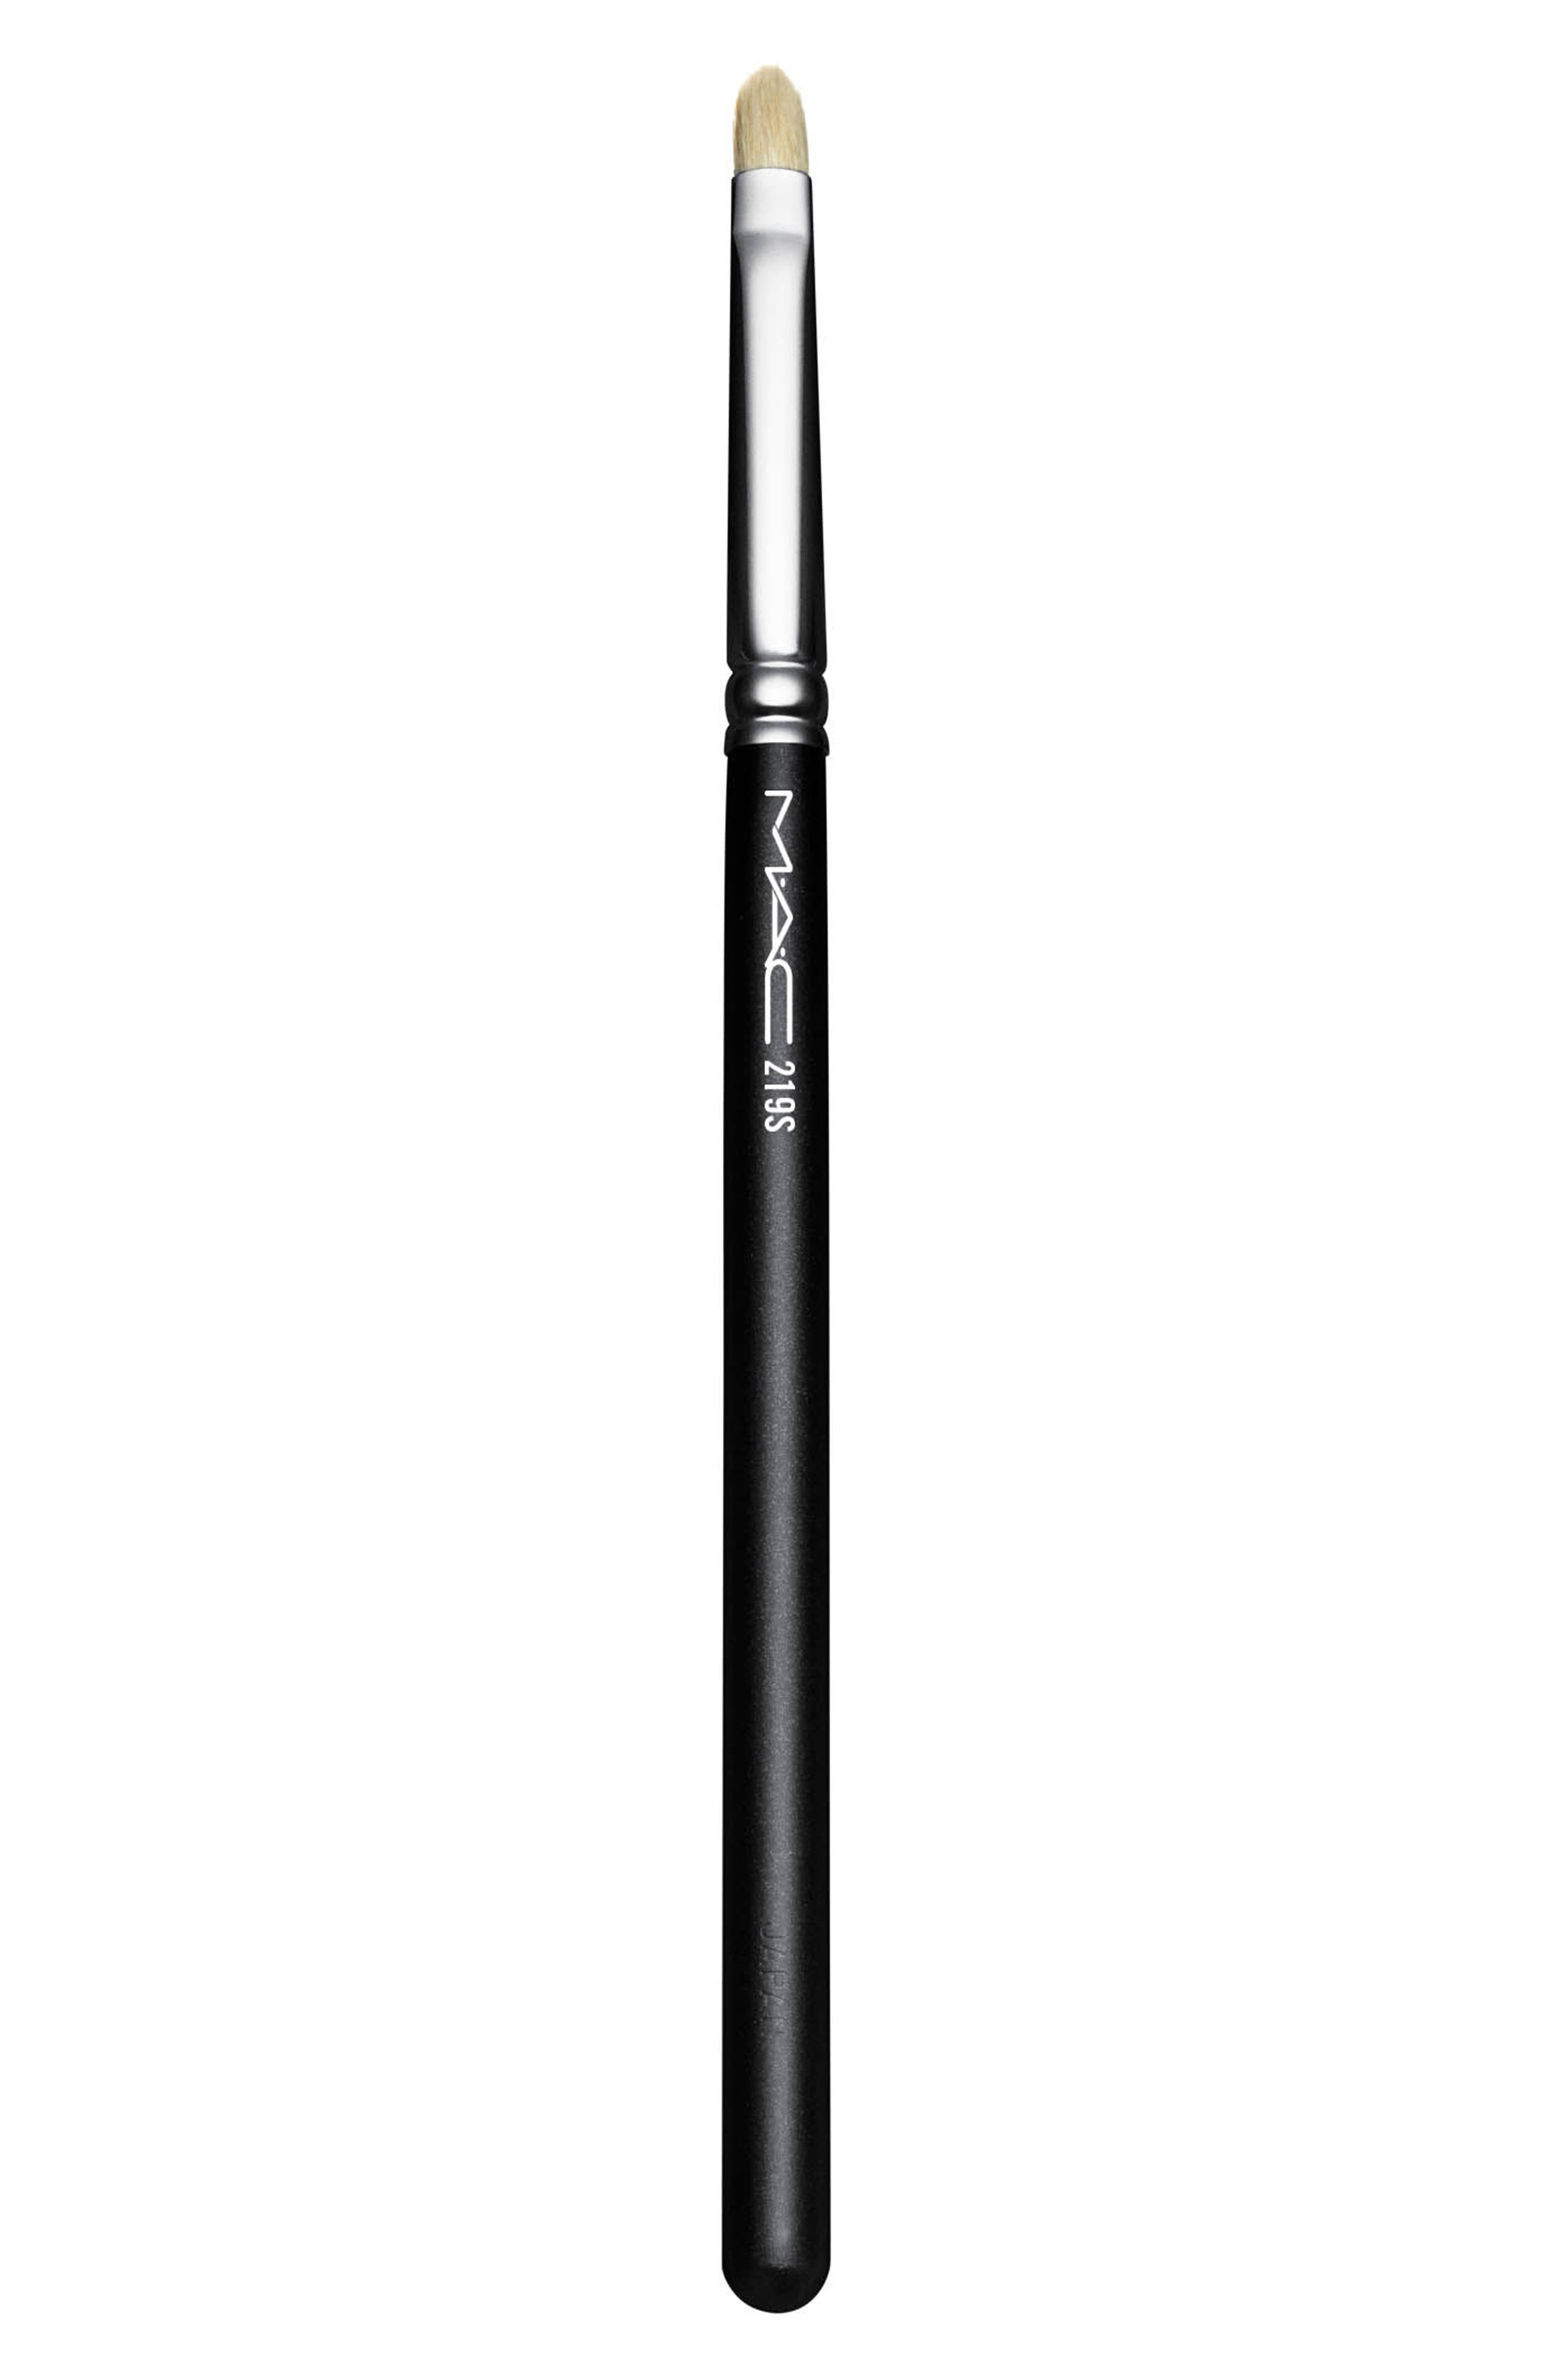 MAC COSMETICS MAC 219S Synthetic Pencil Brush, Main, color, 000